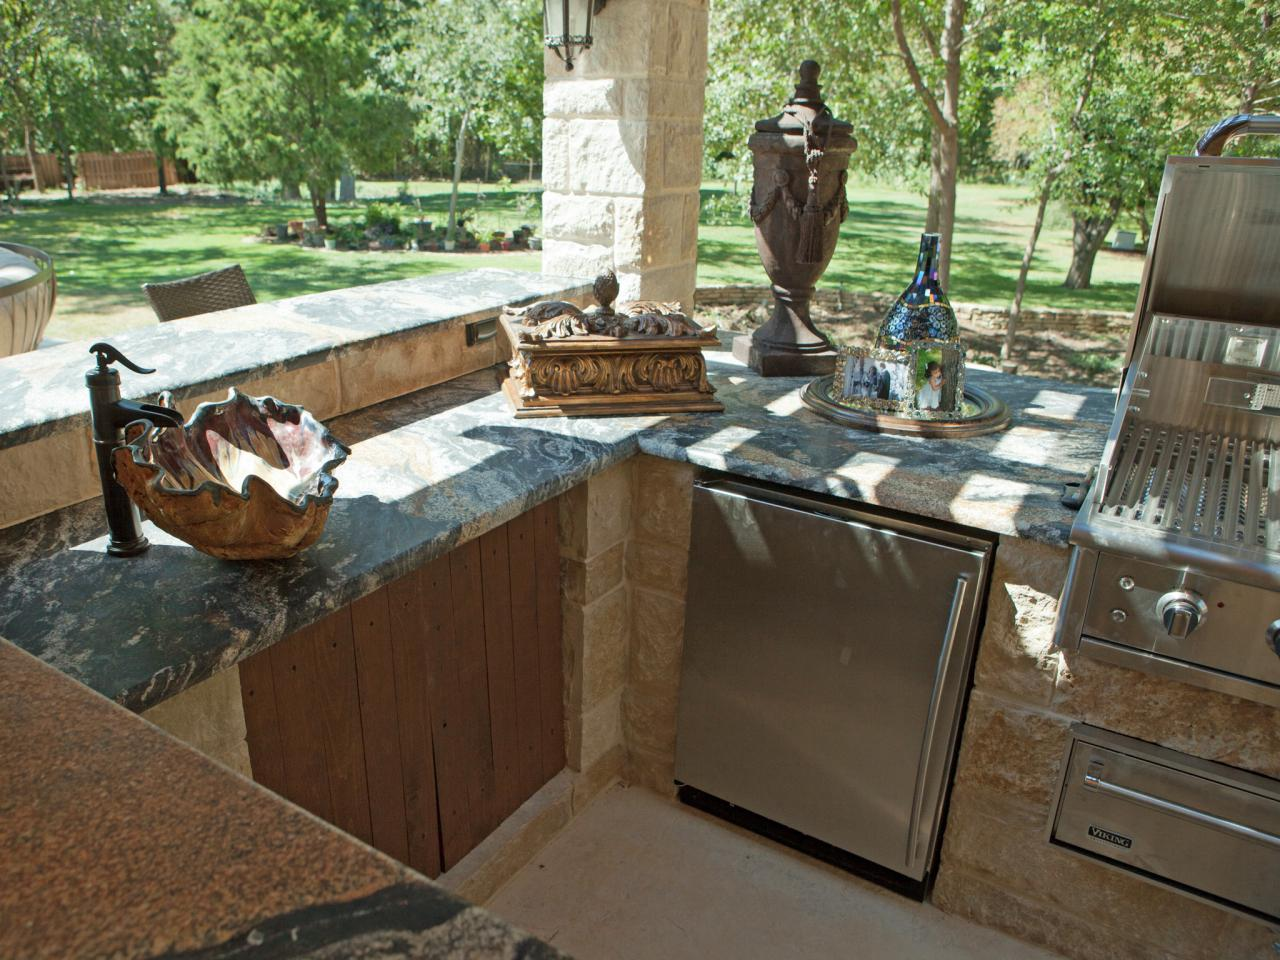 Outdoor kitchen cabinet ideas pictures ideas from hgtv for Outdoor kitchen ideas plans